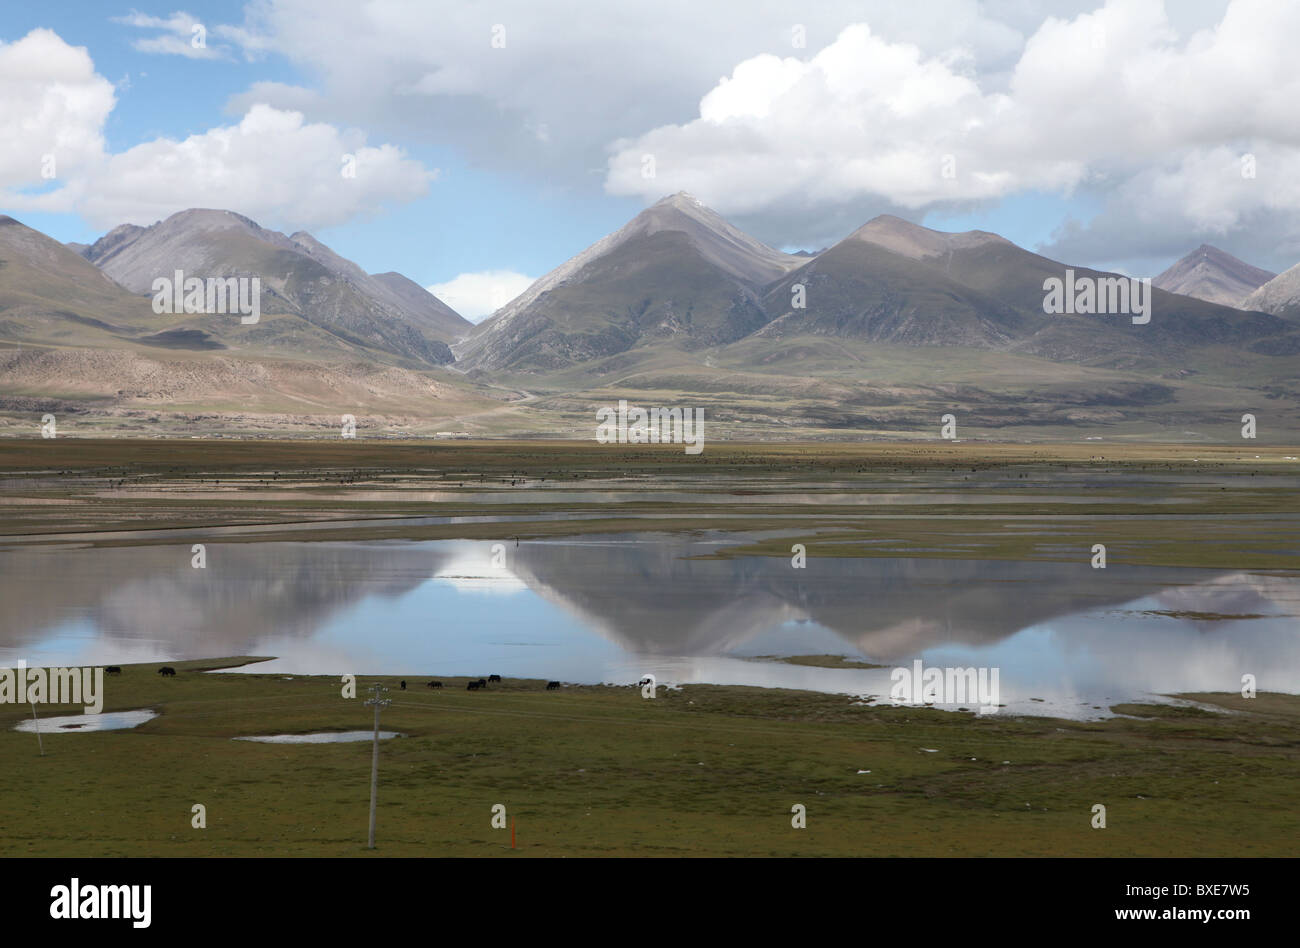 Views on the Qinghai - Xizang train, the world's highest railway, here between Chengdu and Lhasa, Tibet. - Stock Image